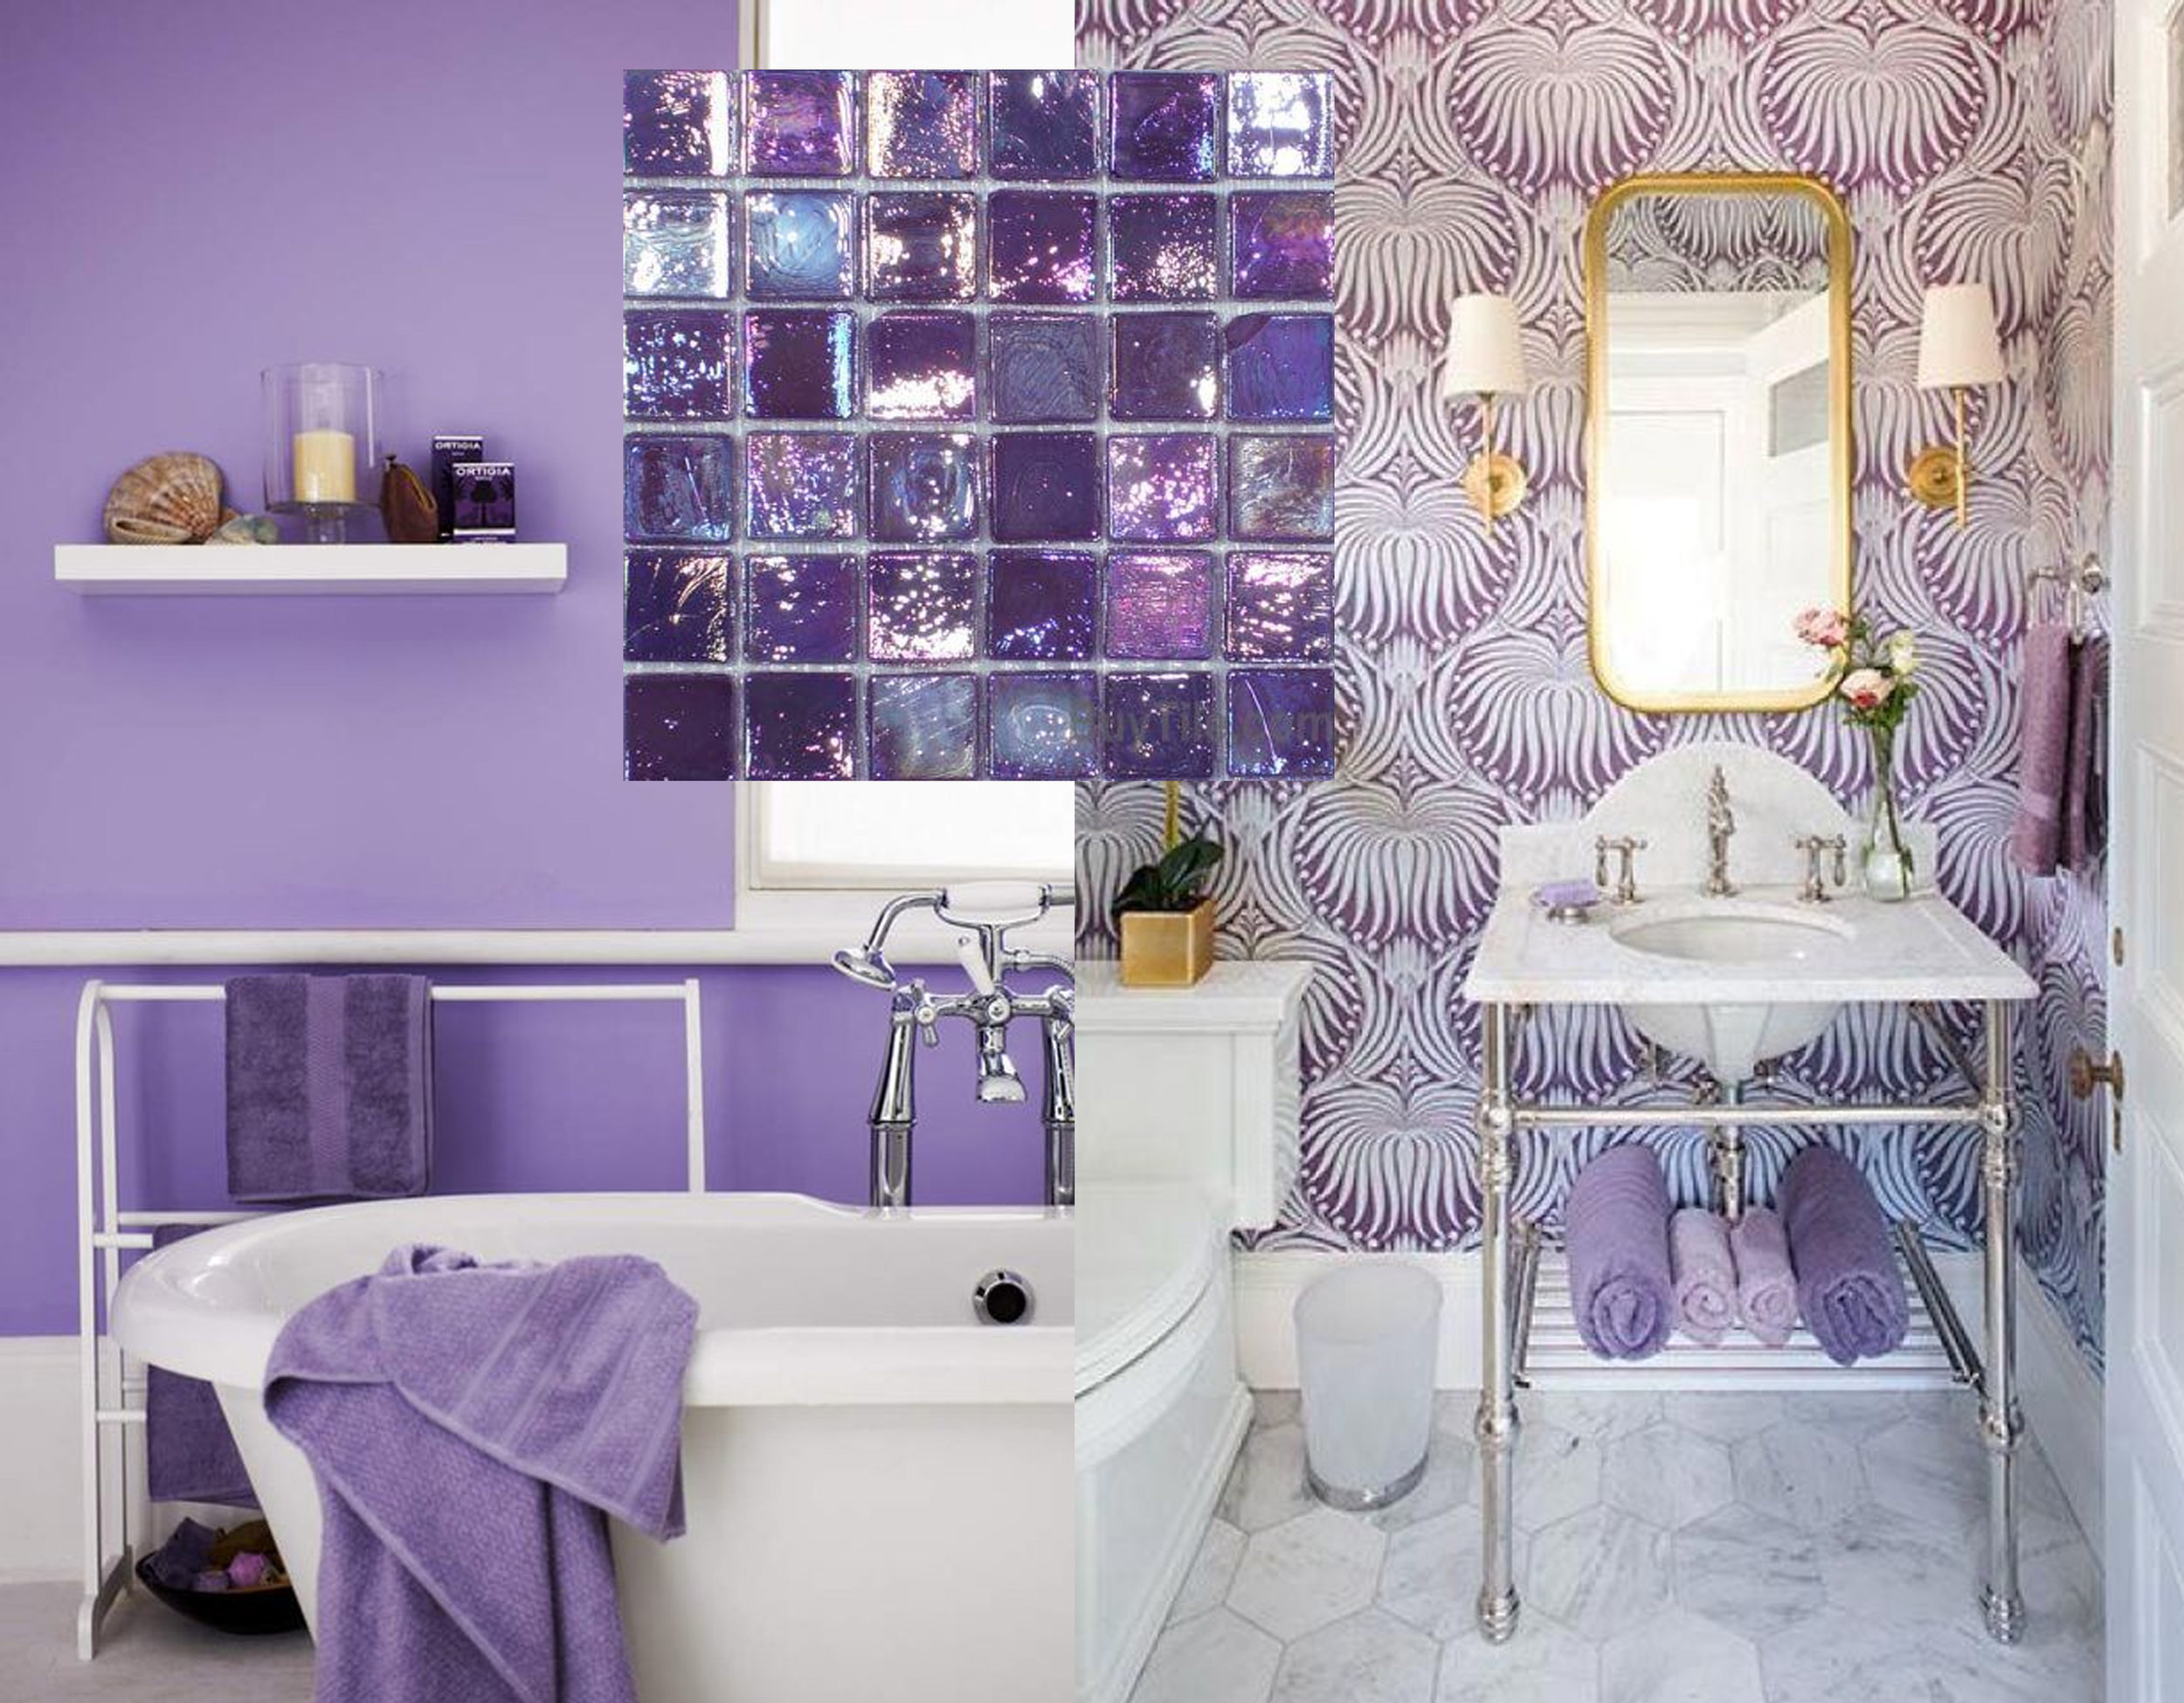 bathroom image via  Cozy Guide  - wallpaper in bathroom via  Doris Leslie Blau